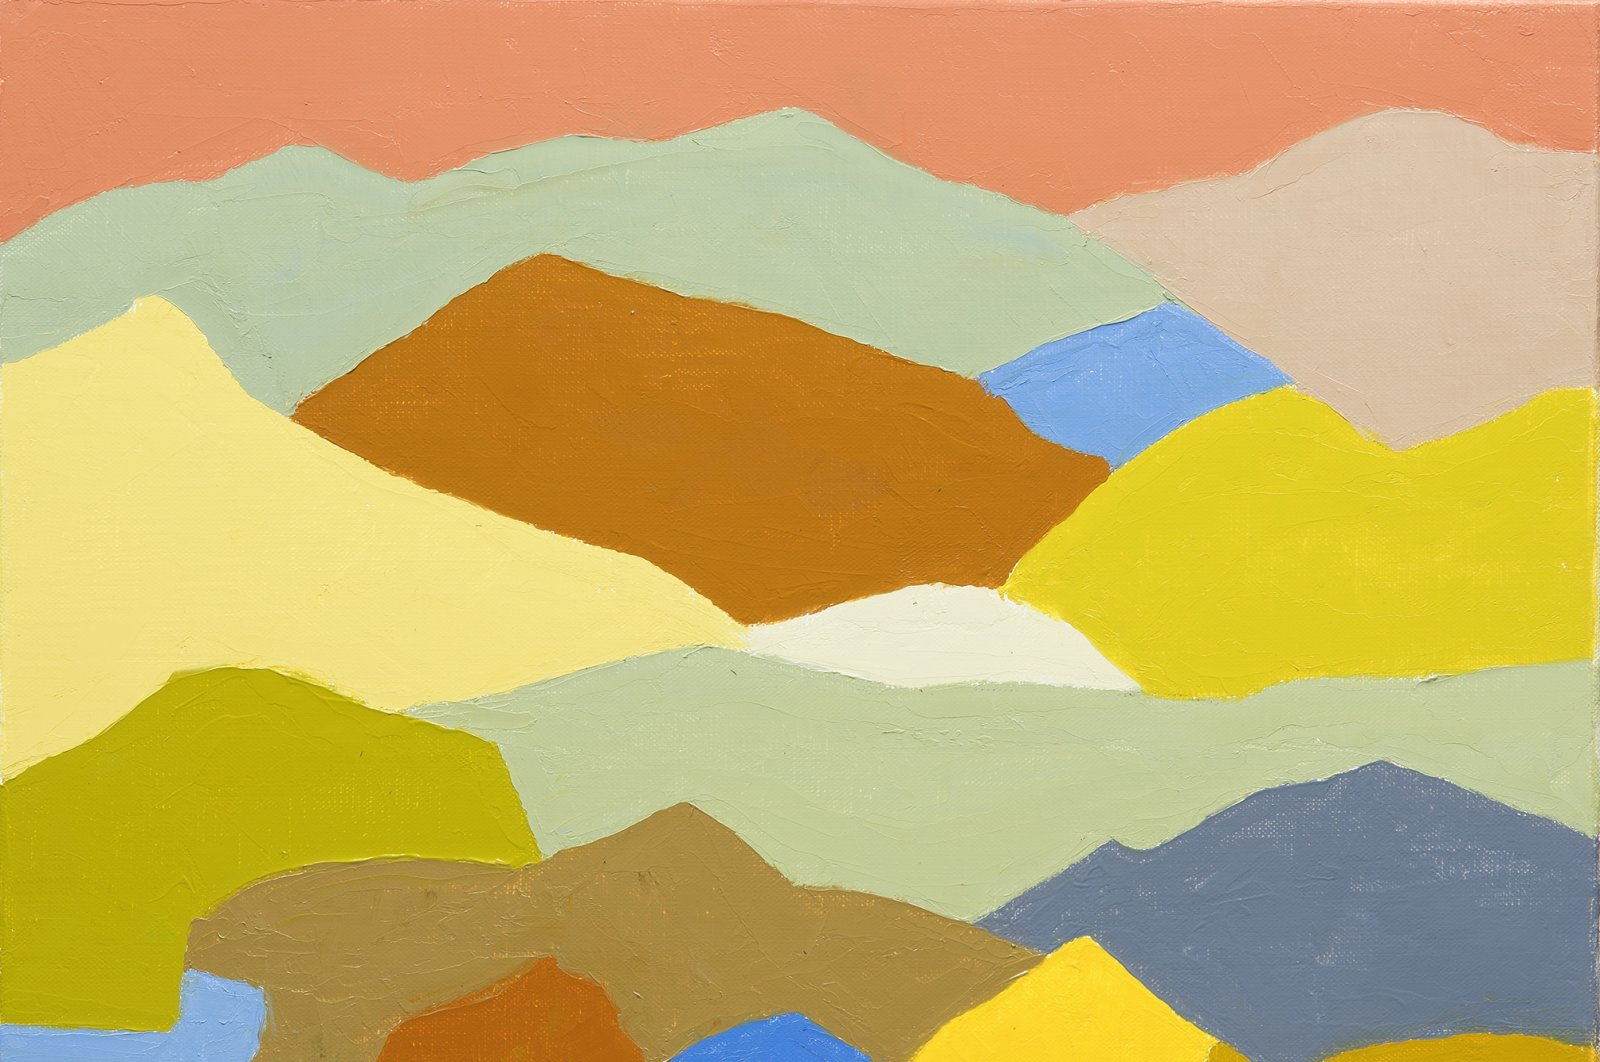 Etel Adnan, untitled, 1961, oil on canvas stretched on wood, 50 by 36 centimeters. (Courtesy of Pera Museum)